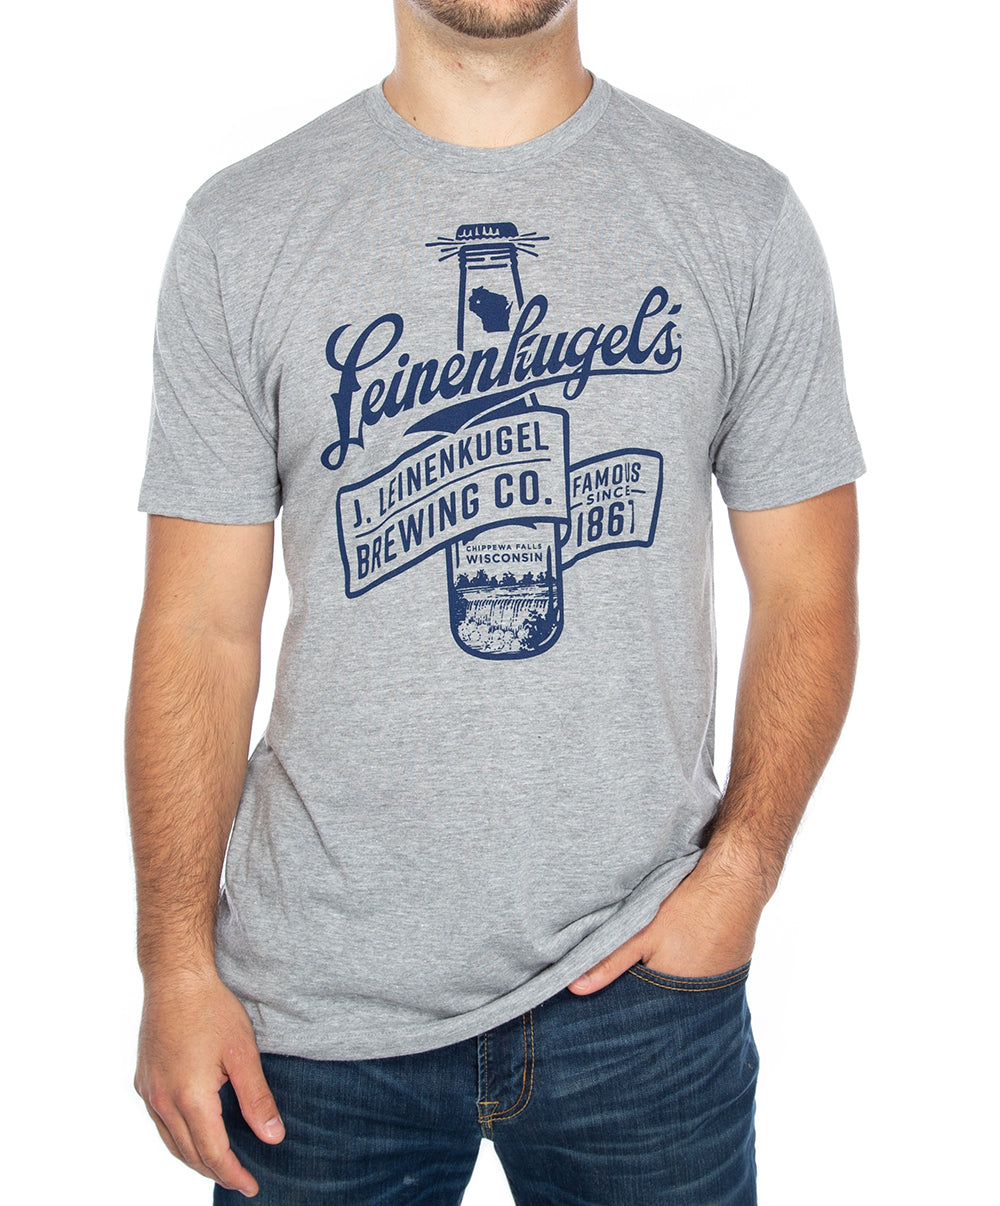 LEINENKUGEL BOTTLE TEE